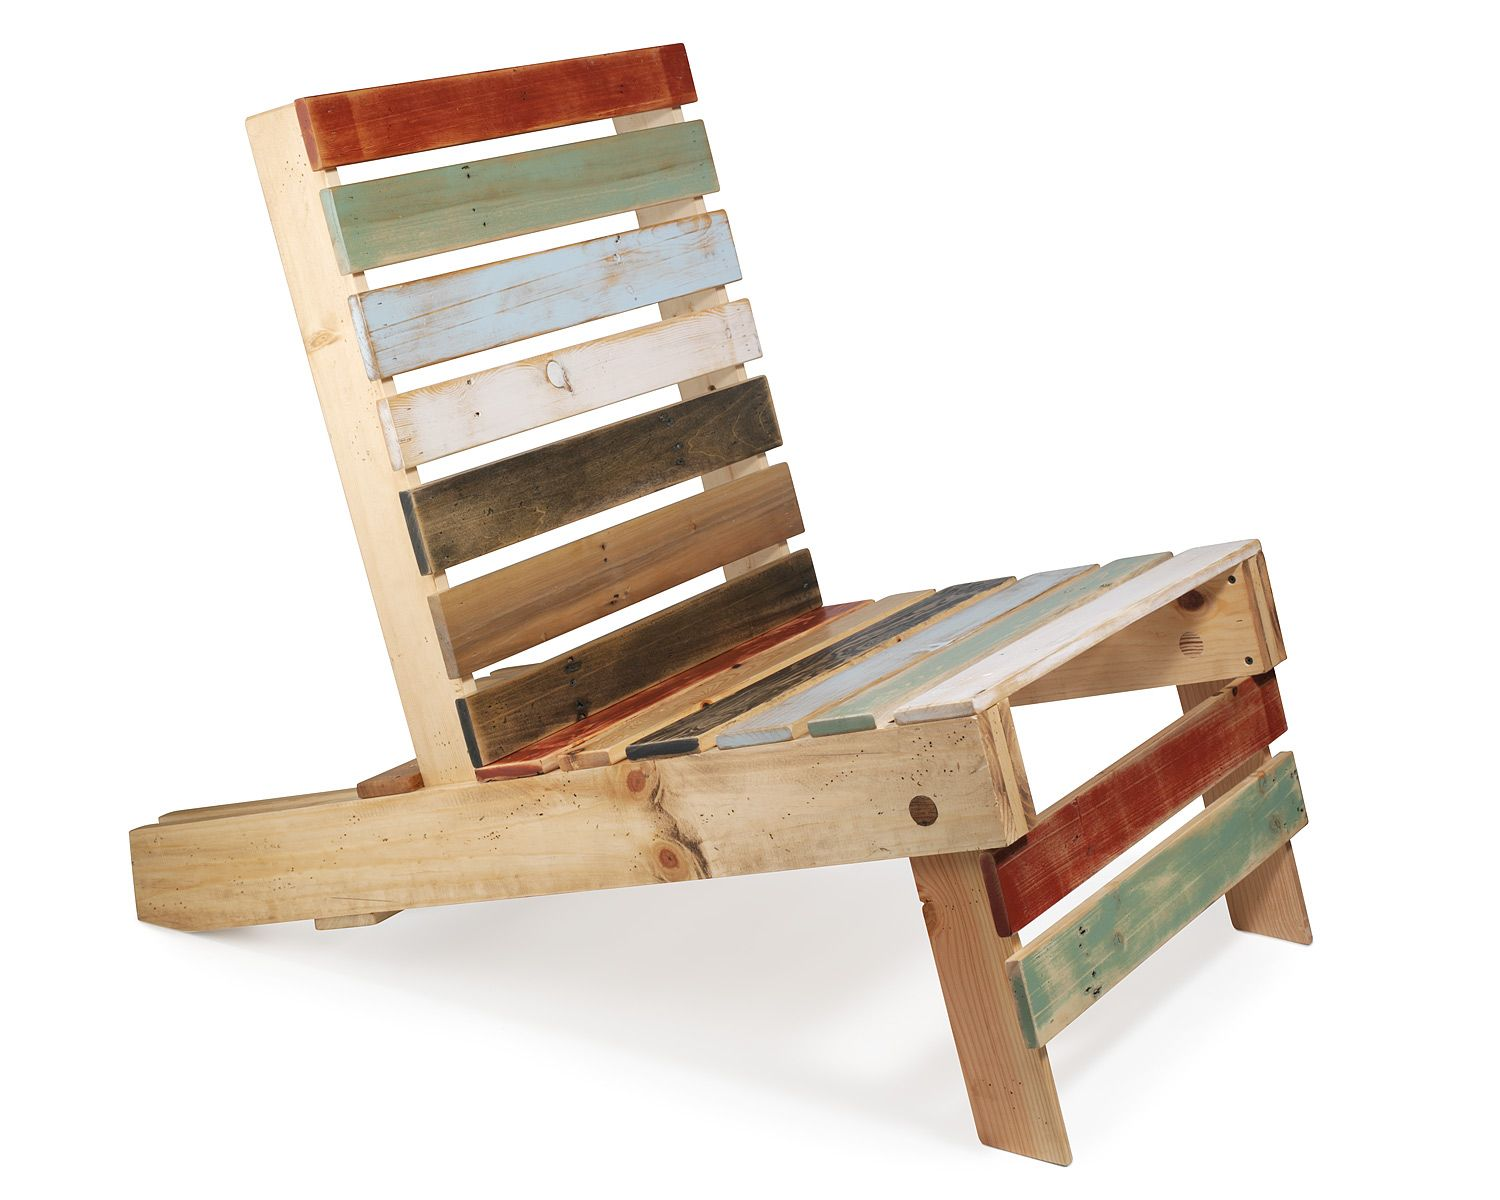 Diy comfortable pallet adirondack chair 101 pallets - Magnetic Pallet Chair